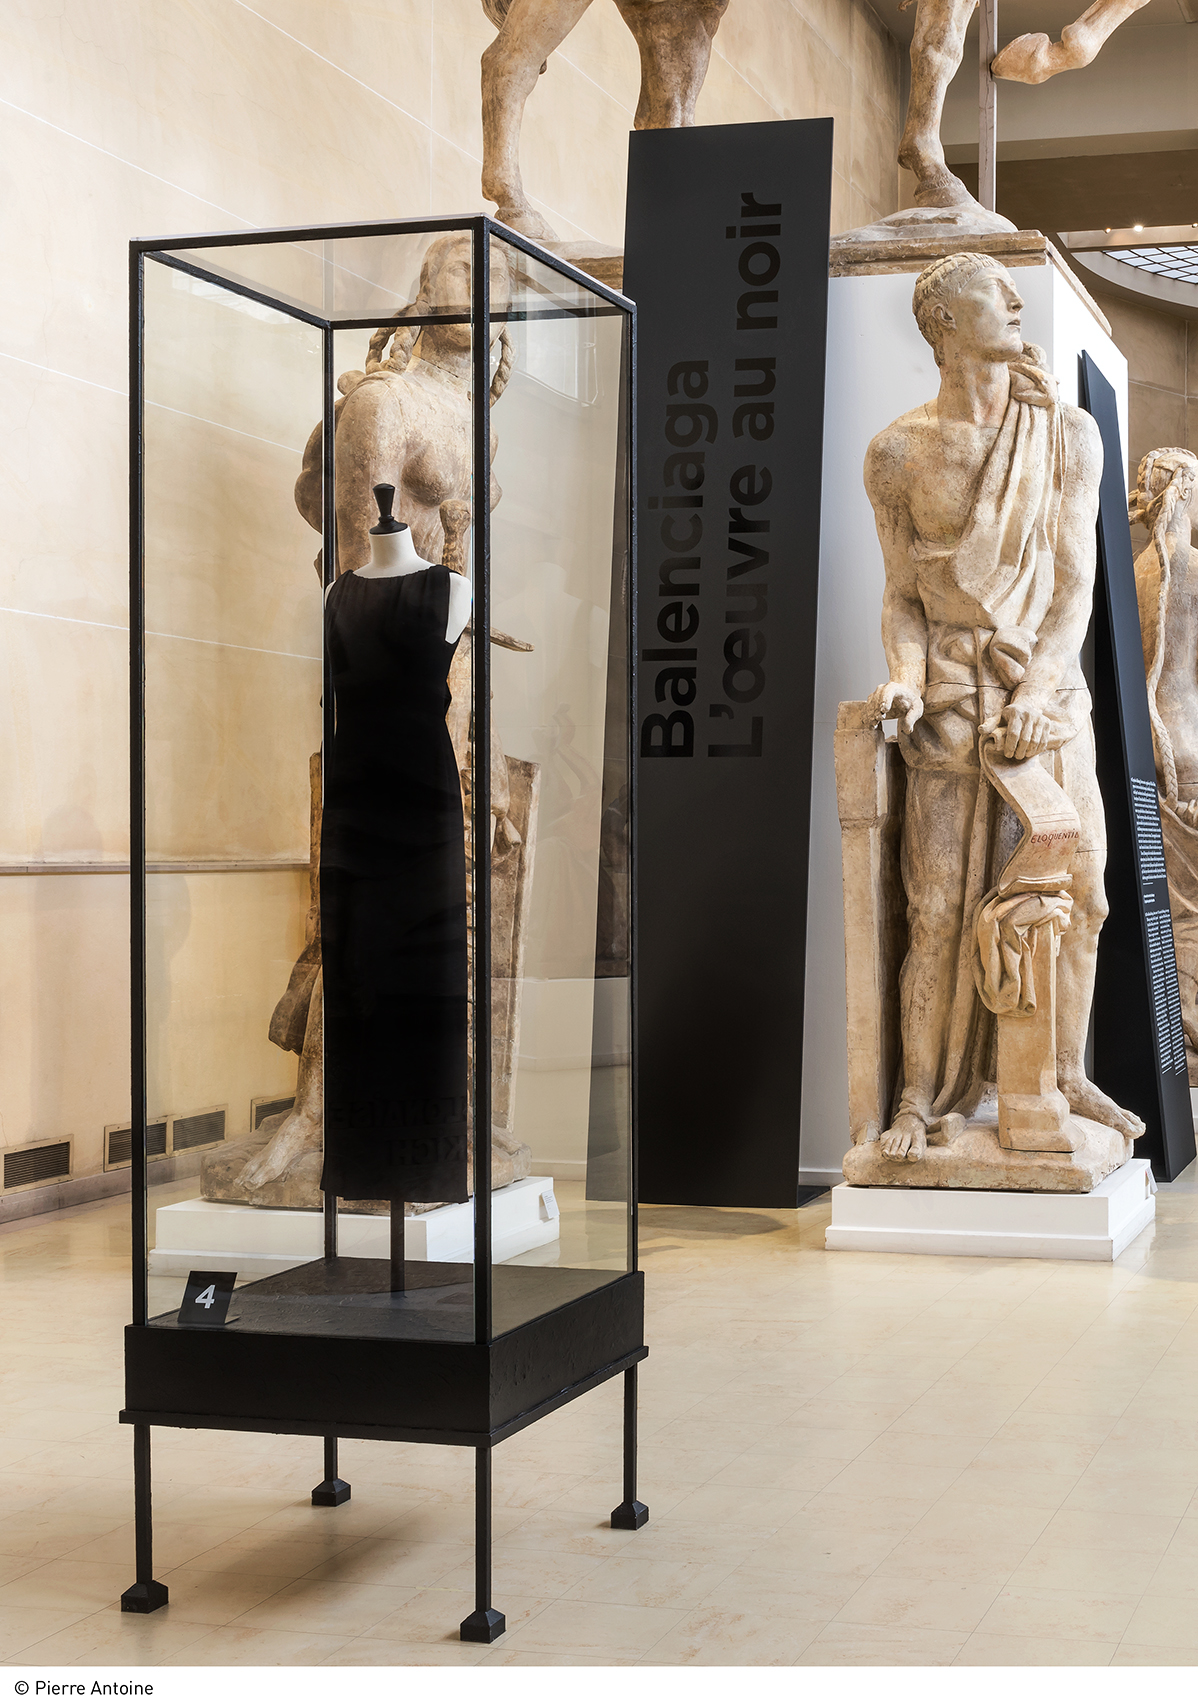 70 Balenciaga pieces are now on display at the Musée Bourdelle in Paris.  / Pierre Antoine